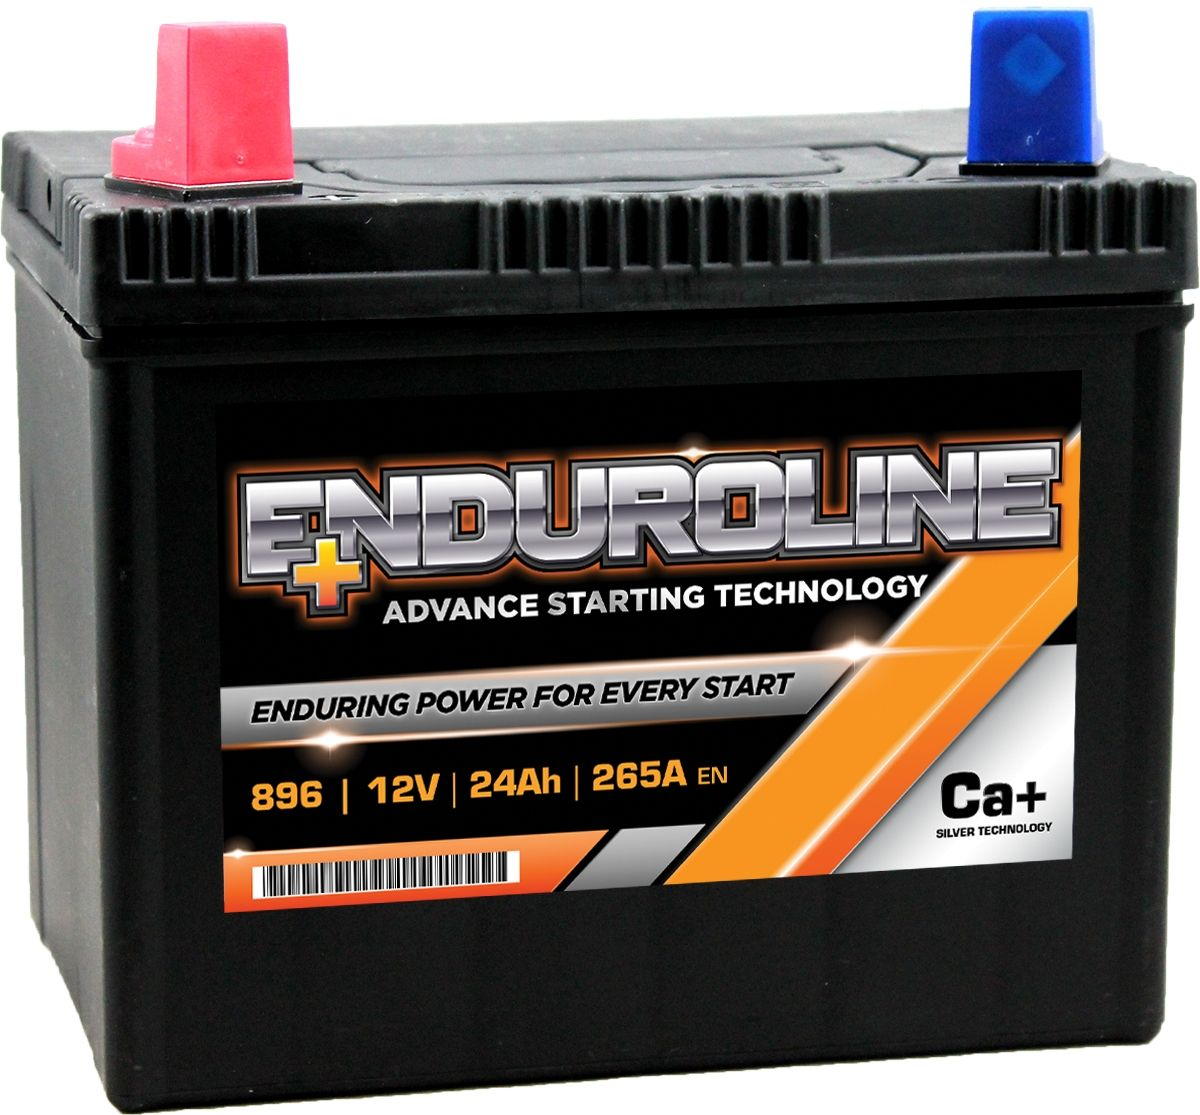 896 Enduroline Lawnmower Battery 12V